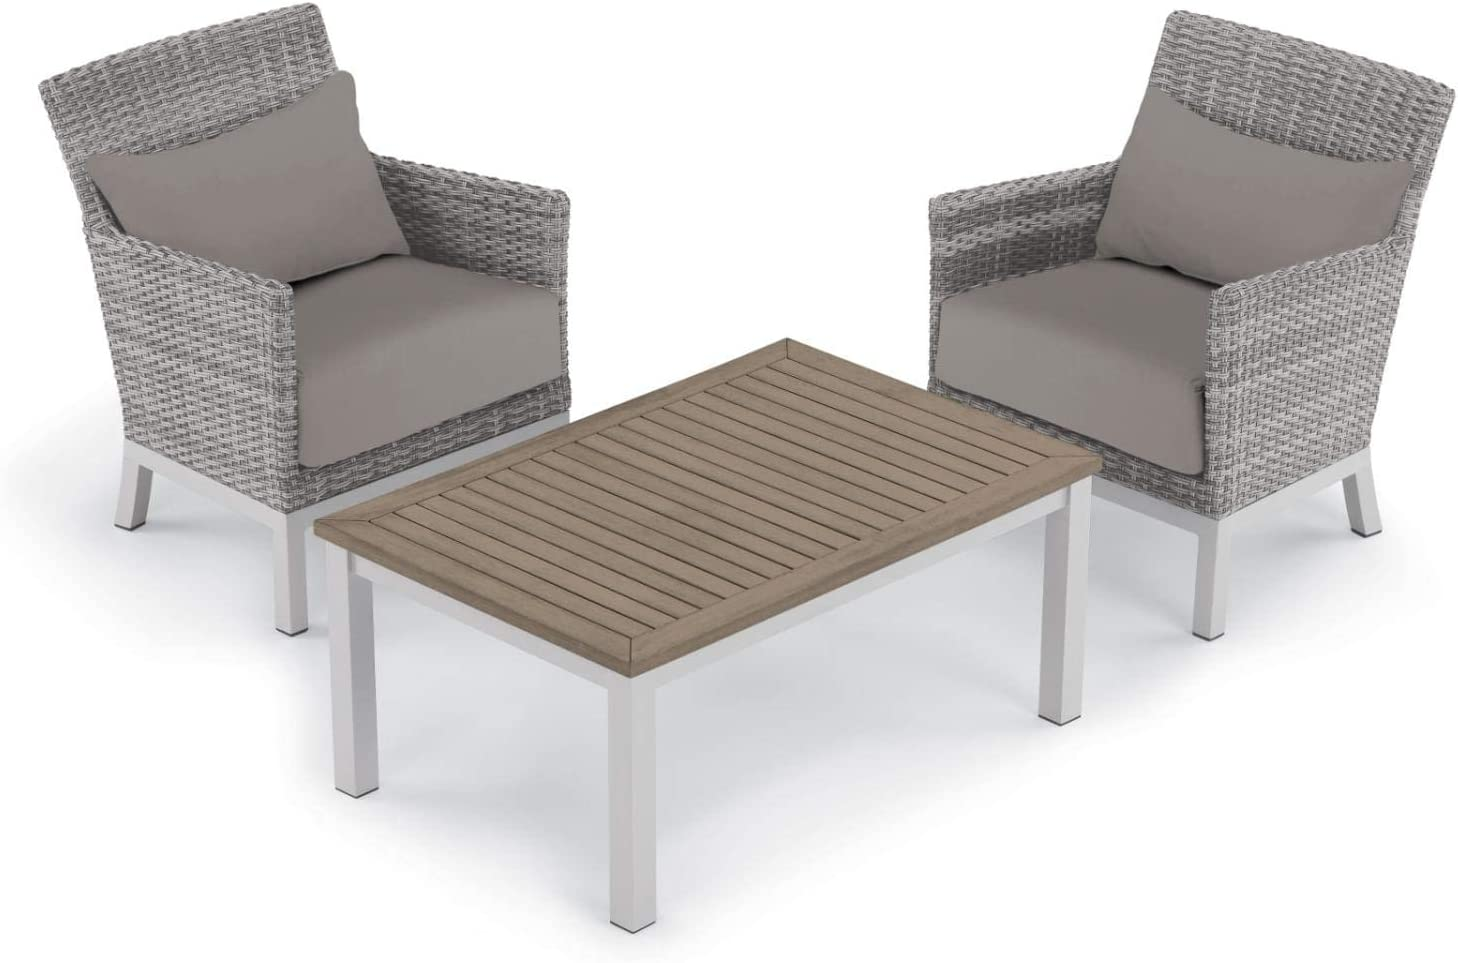 Oxford Garden 5552 Argento & Travira Furniture Set, Powder Coat Flint